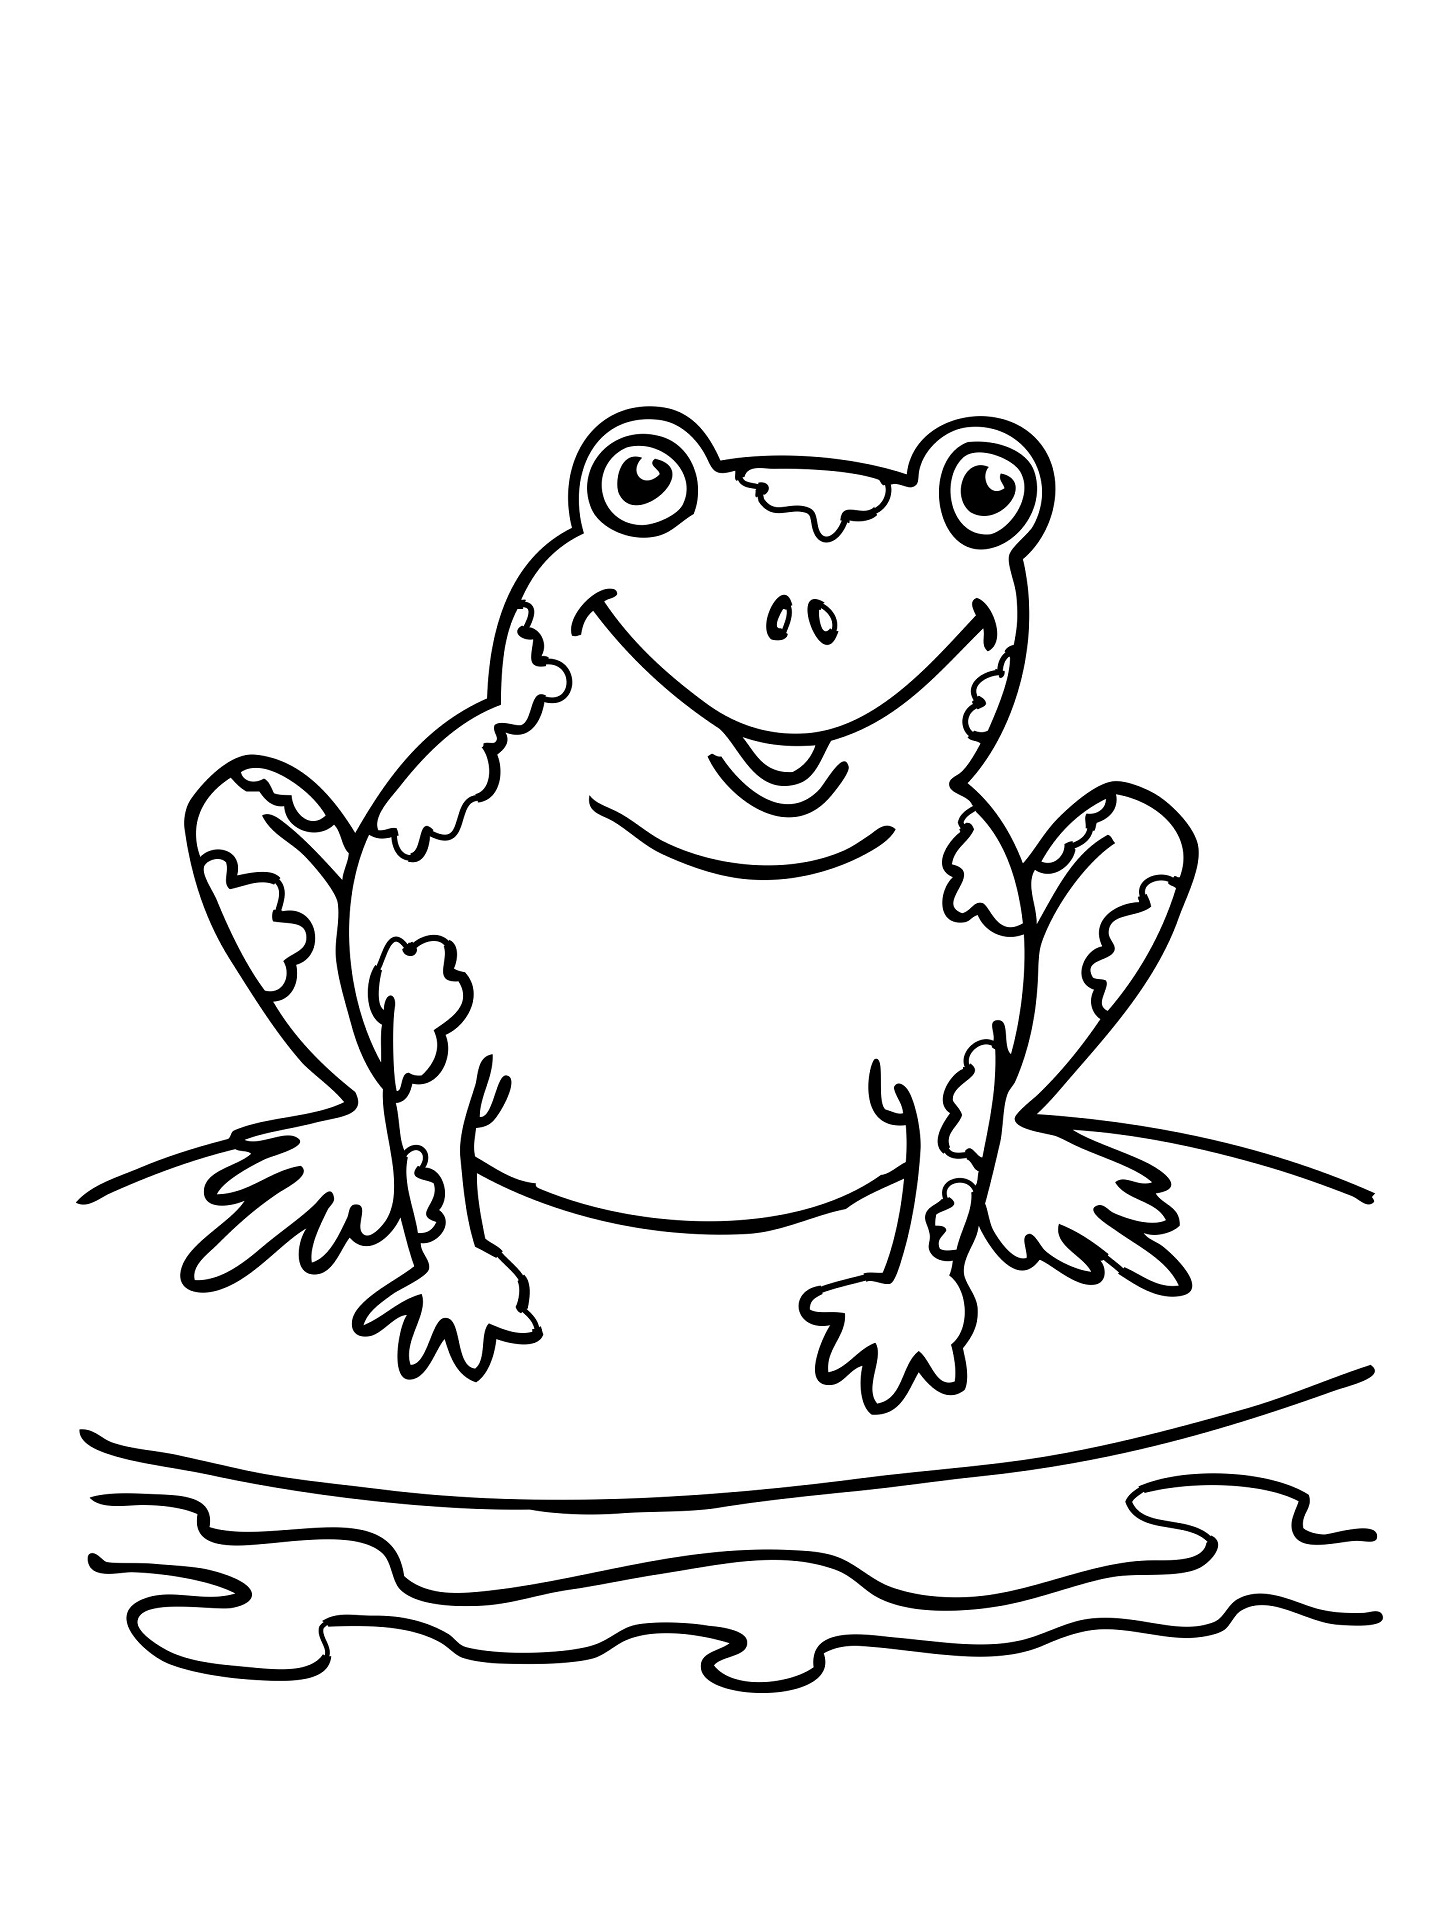 A Frog Habitat Coloring Pages Coloring Pages